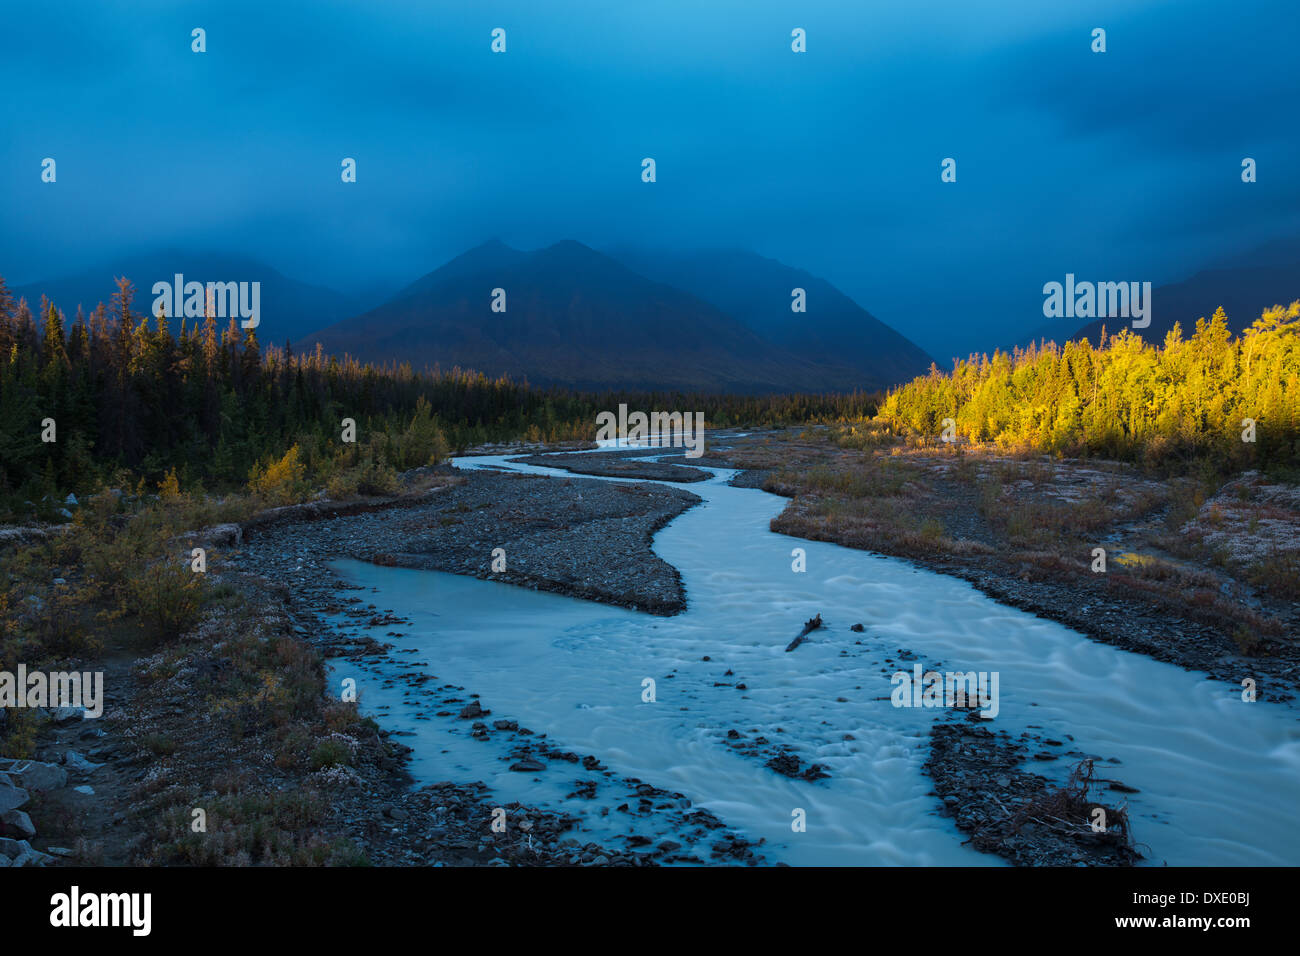 Quill Creek & the Auriol Range, St Elias Mountains, Yukon Territories, Canada - Stock Image